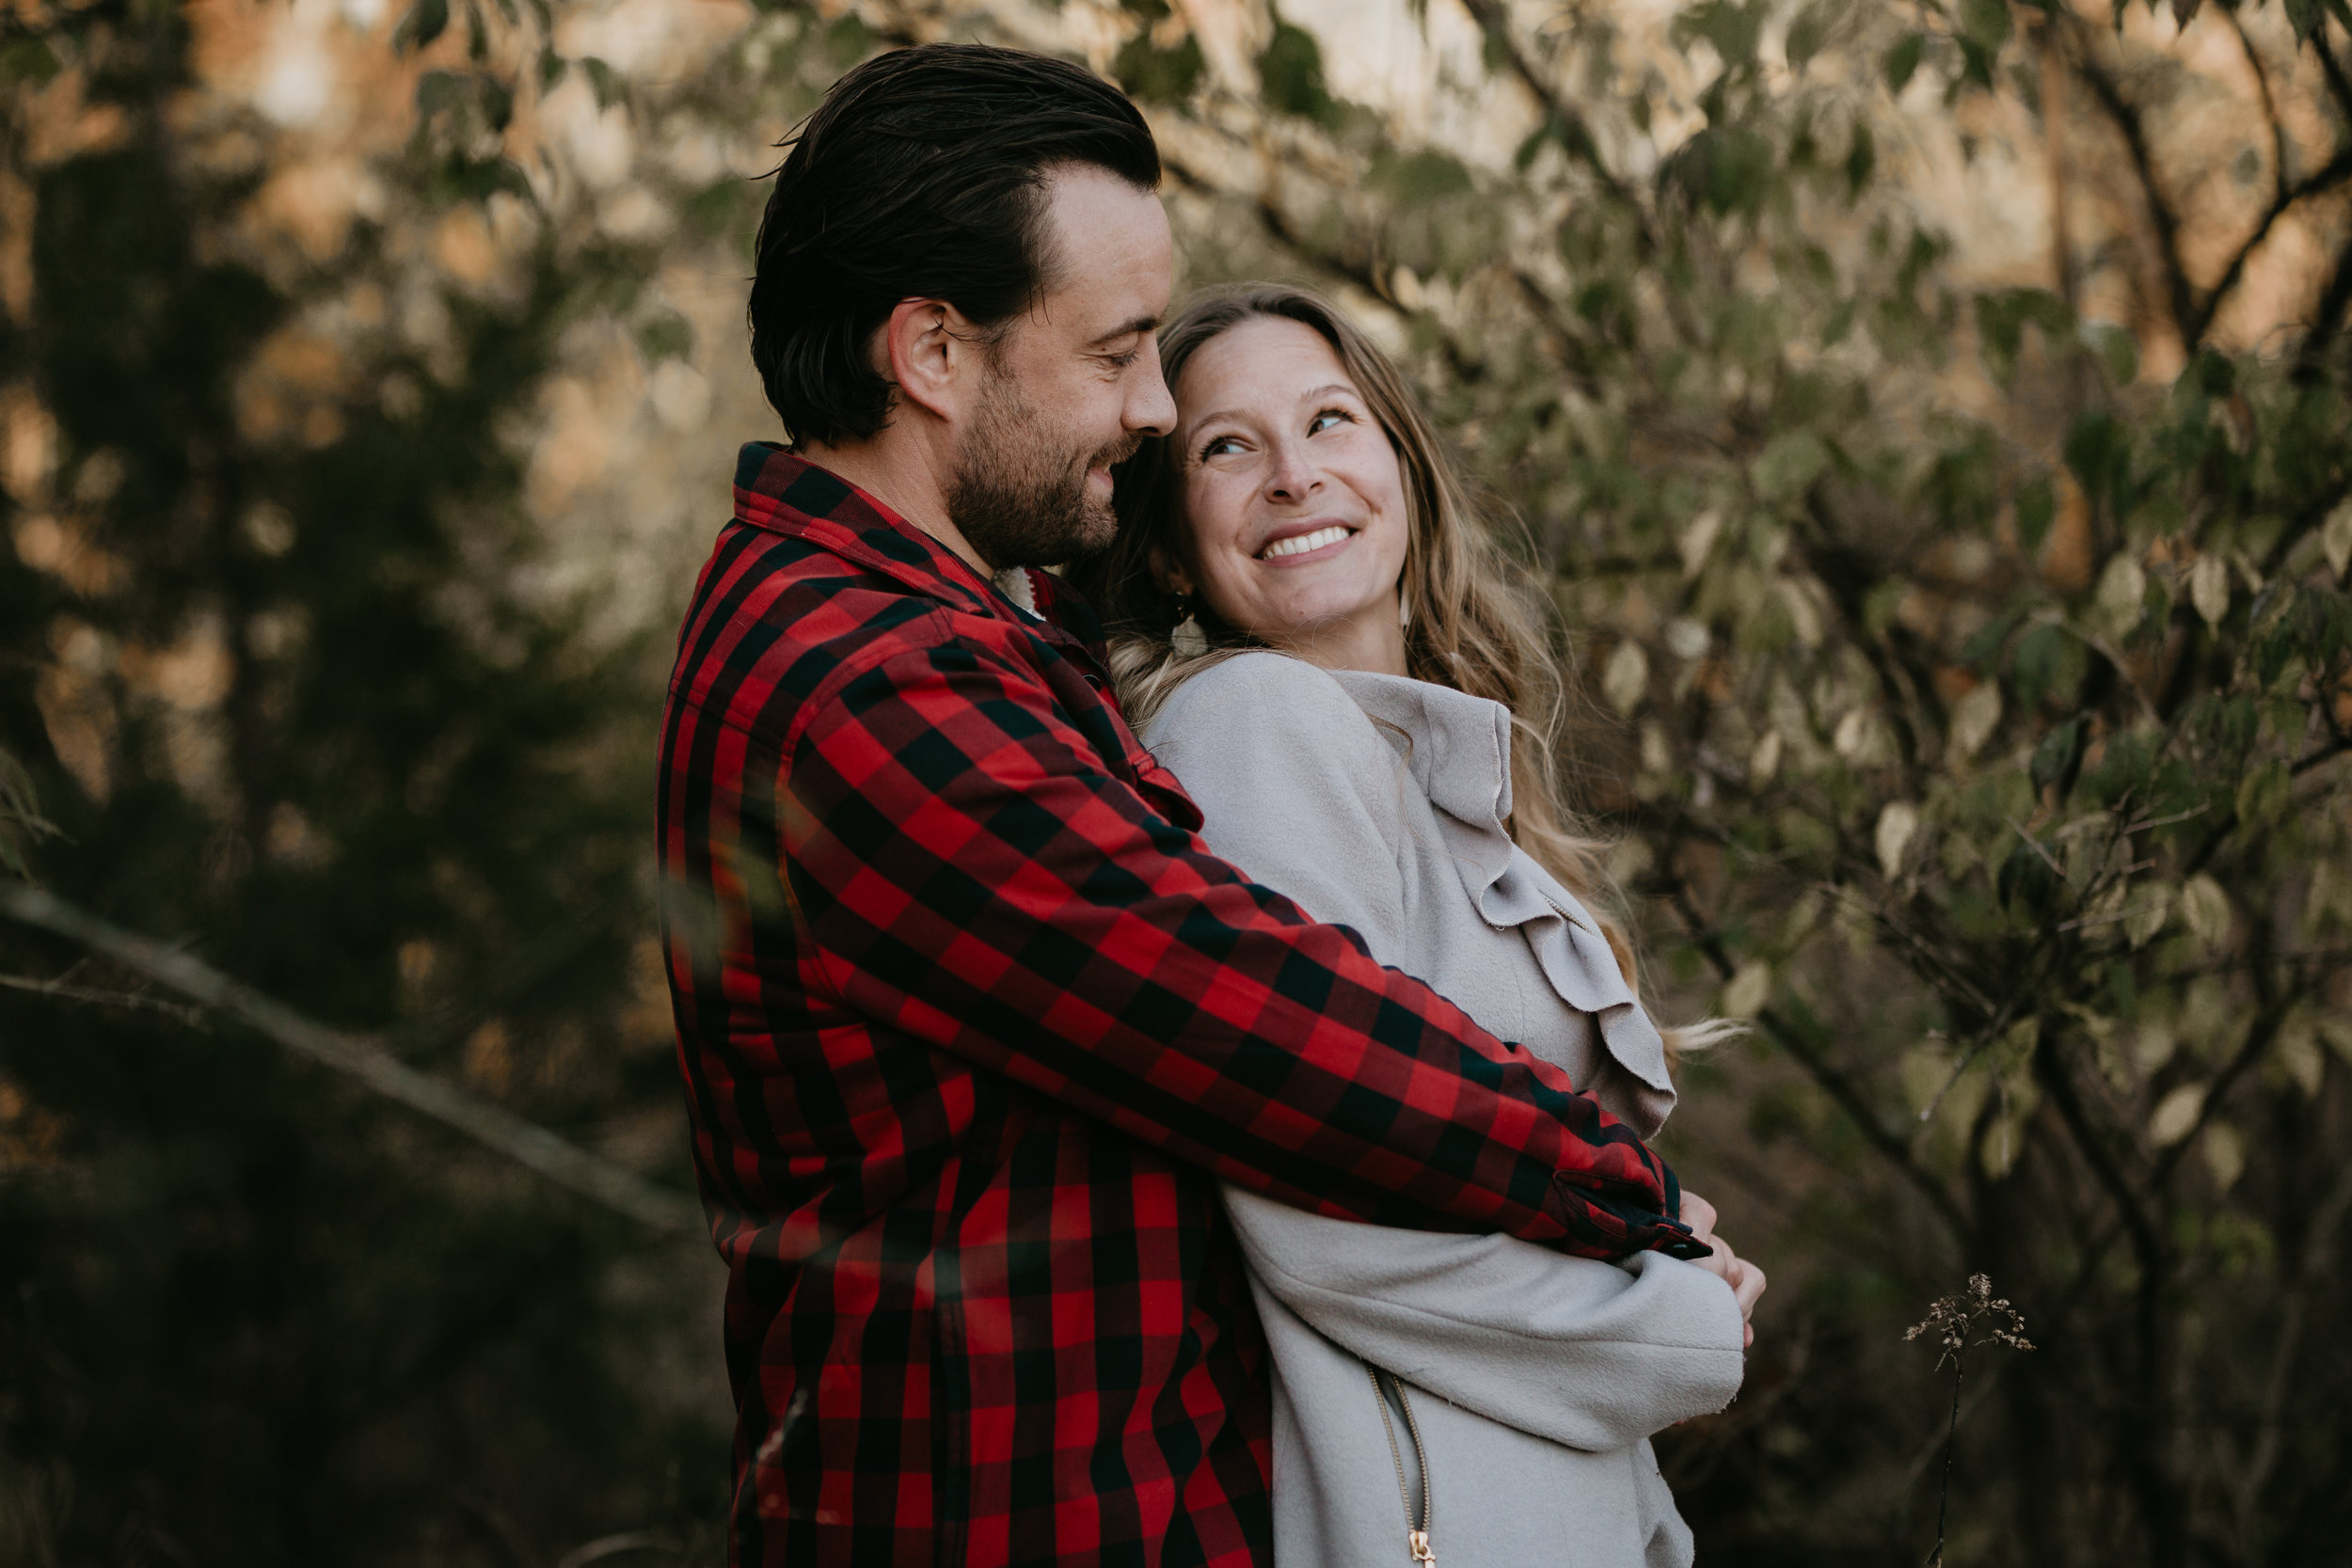 nicole-daacke-photography-white-cliffs-of-conoy-in-lancaster-pa-pennsylvania-adventure-session-adventure-elopement-photographer-engagement session-in-lancaster-pa-photographer-golden-sunset-winter-solstice-wedding-riverside-elopement-4691.jpg